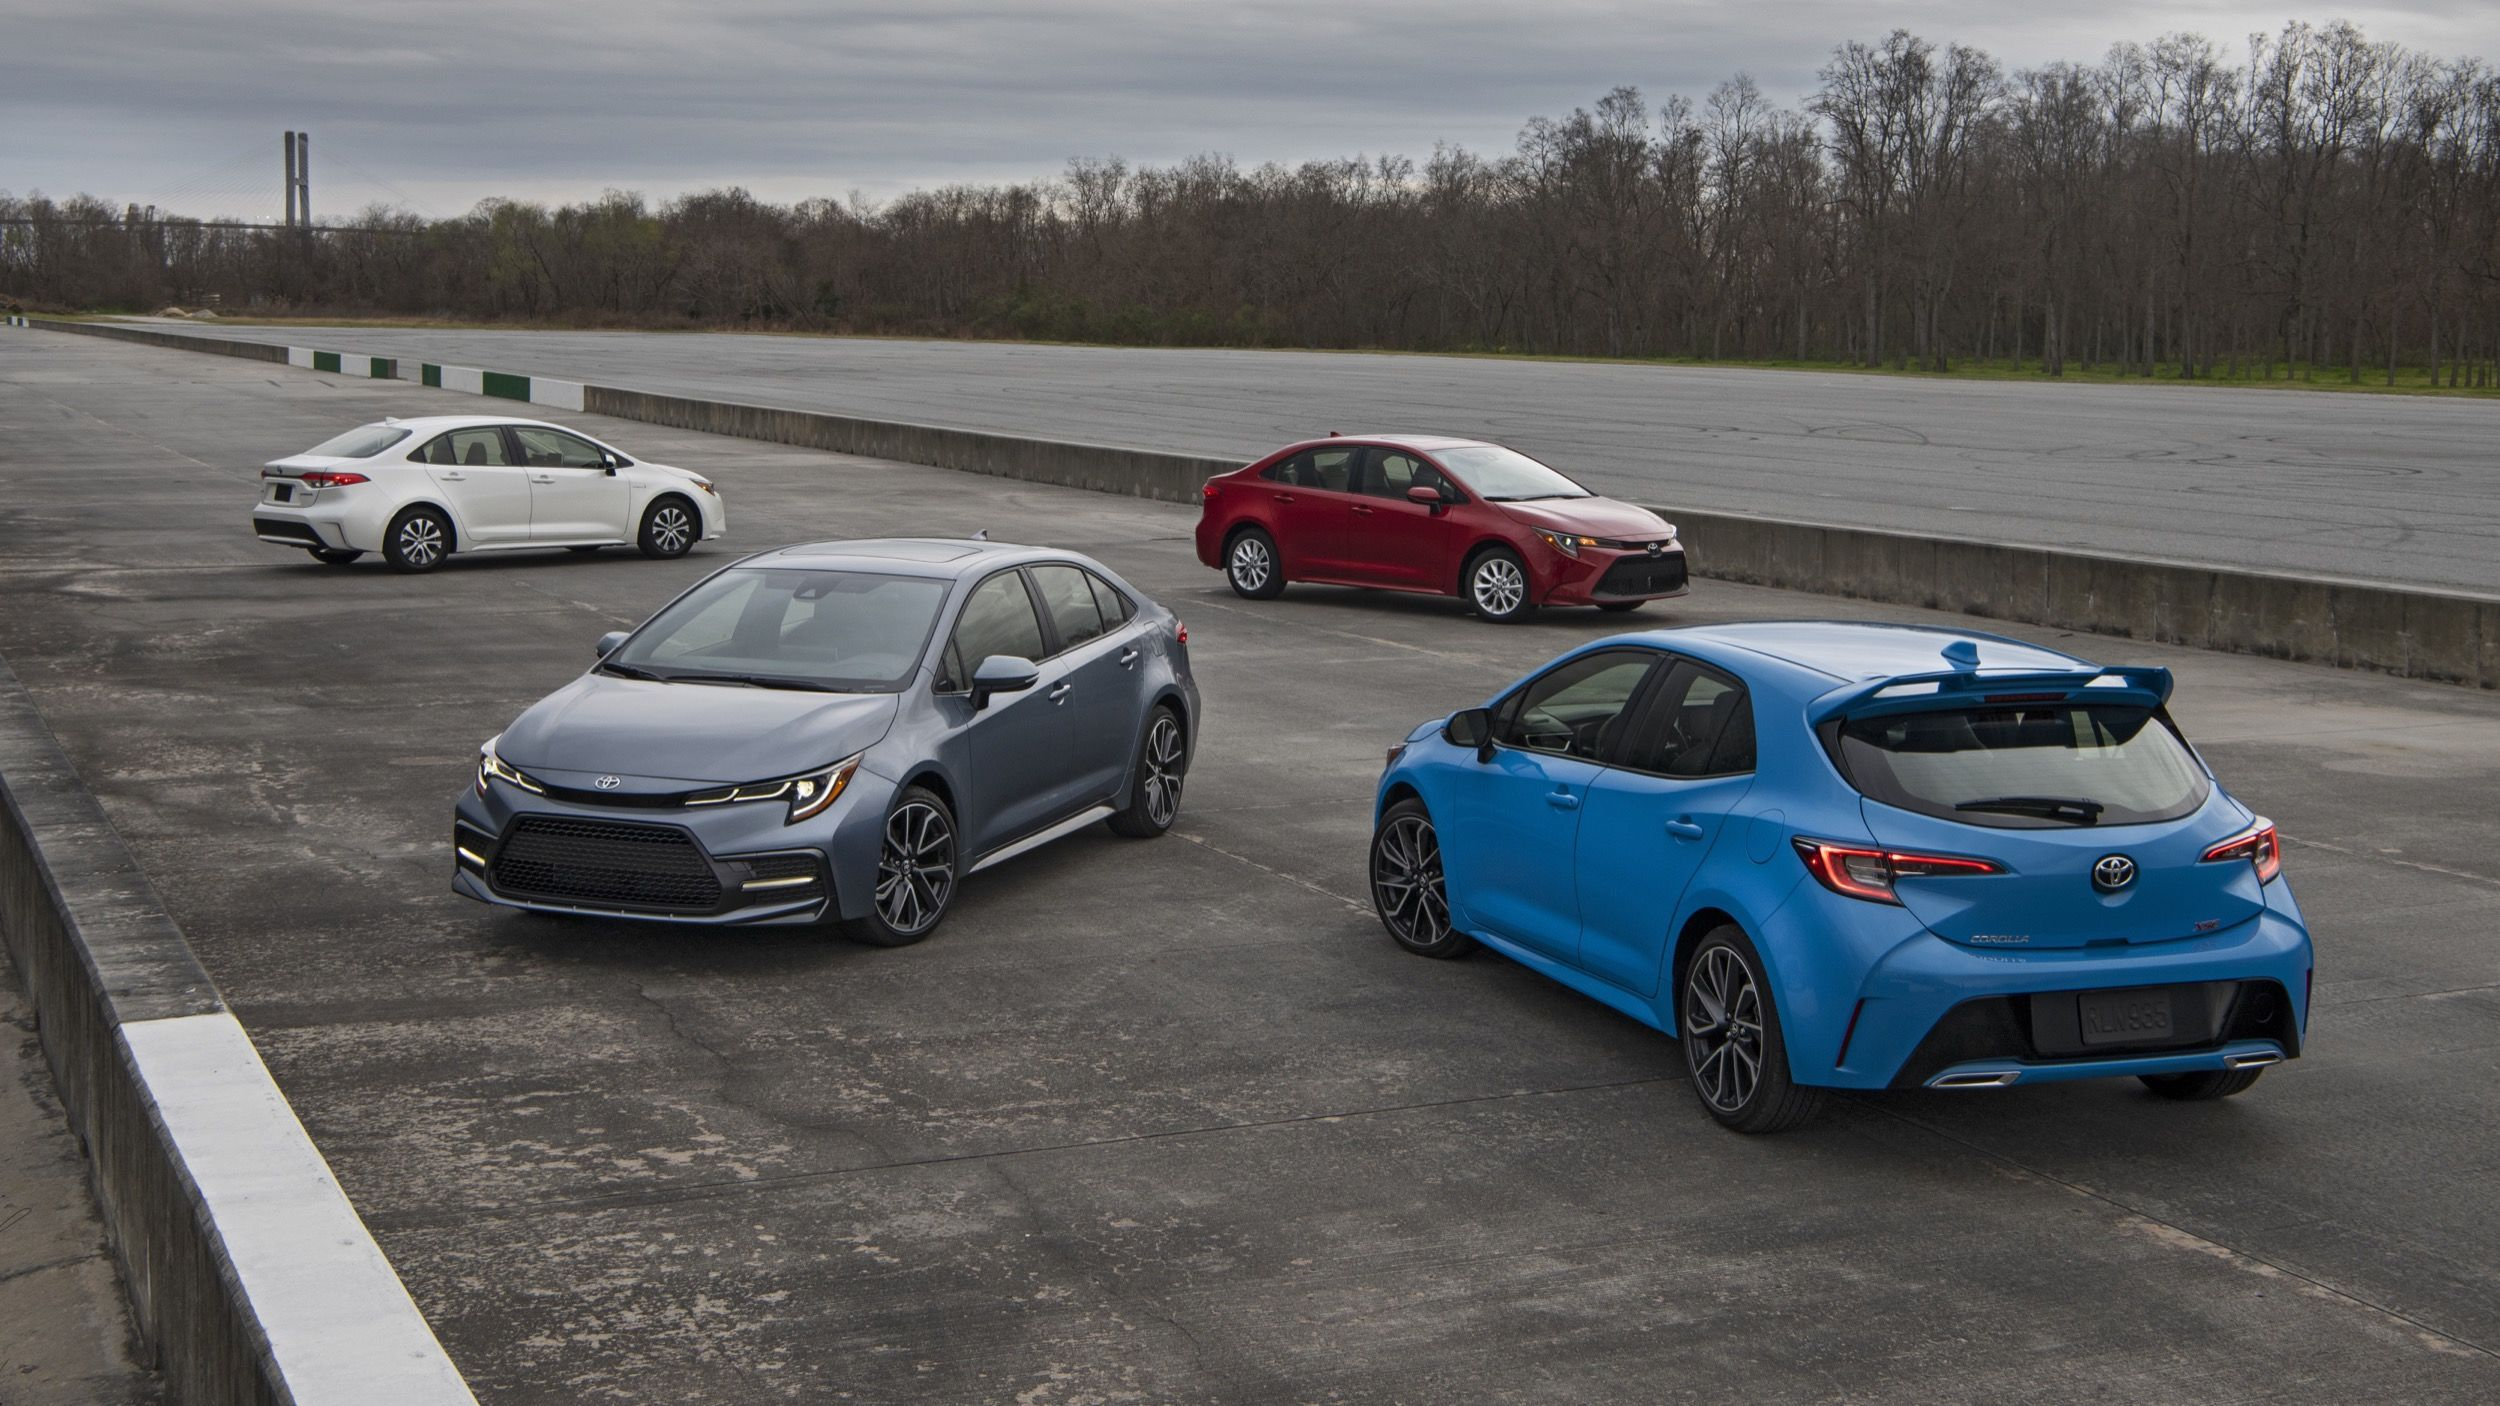 2020 Toyota Corolla Hatchback Check More At Http Www Cars1 Club 2019 03 17 2020 Toyota Corolla Hatc Corolla Hatchback Toyota Corolla Toyota Corolla Hatchback